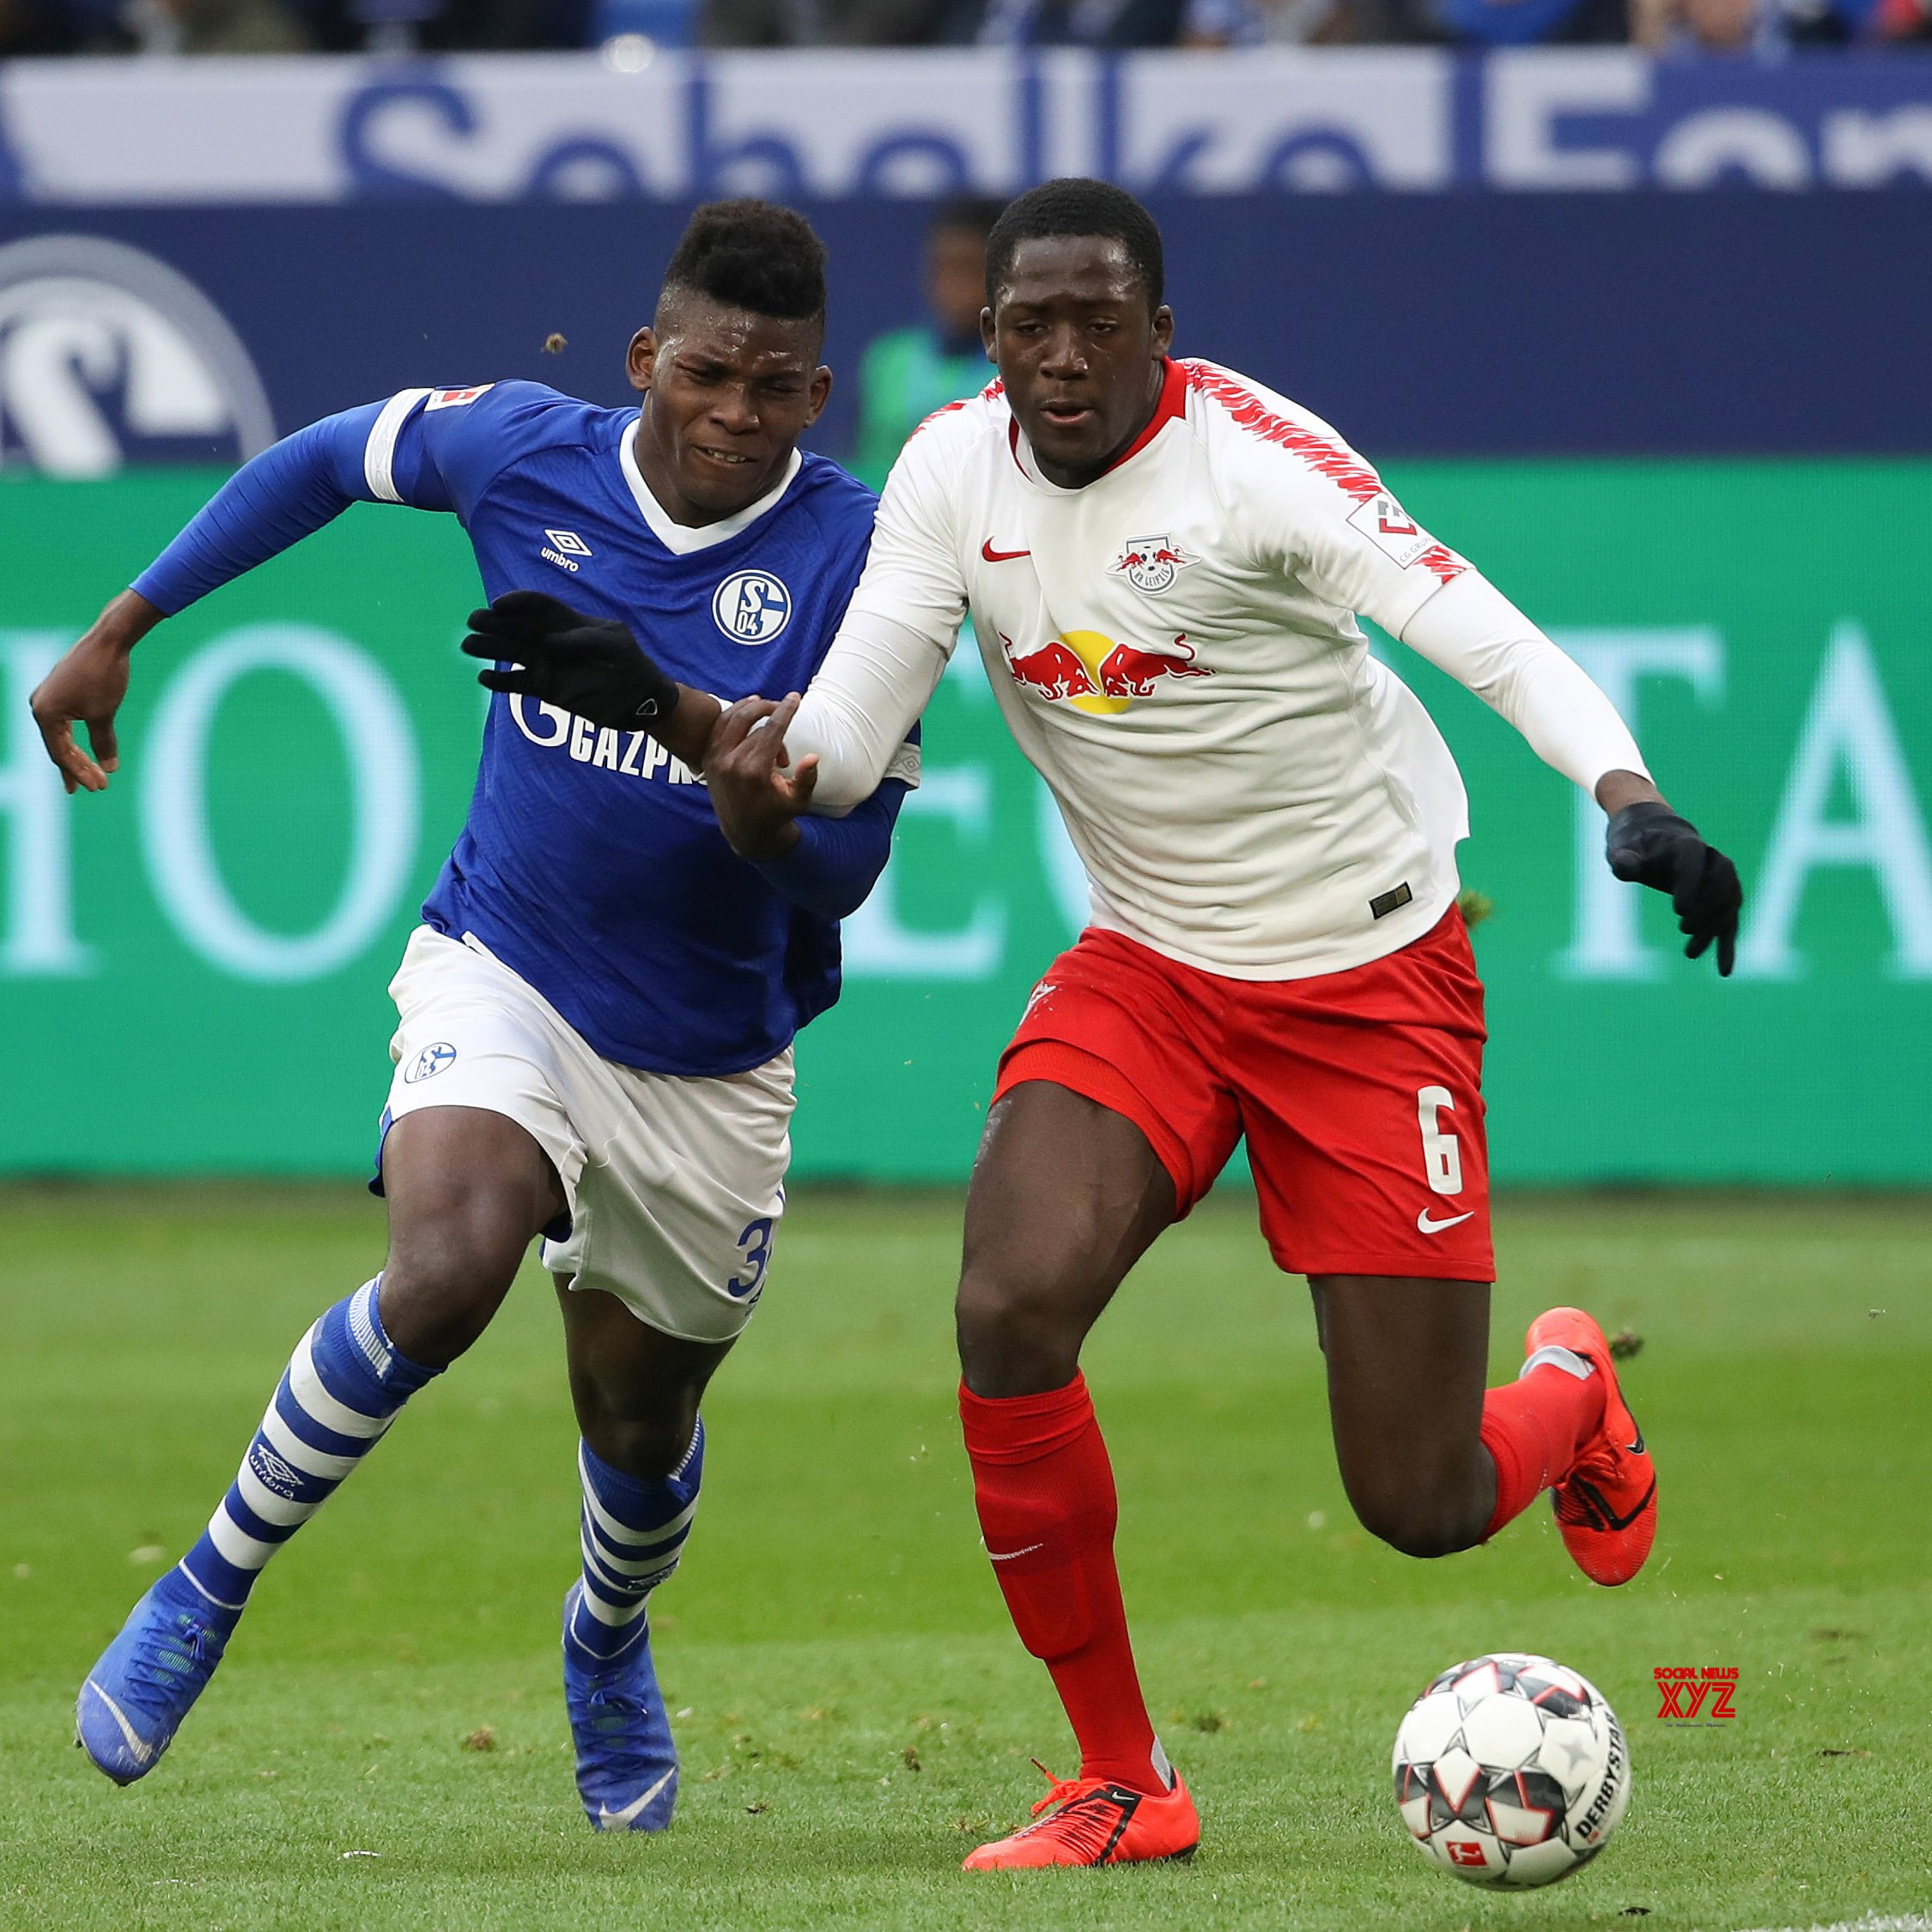 GERMANY - GELSENKIRCHEN - SOCCER - BUNDESLIGA - LEIPZIG VS SCHALKE 04 #Gallery